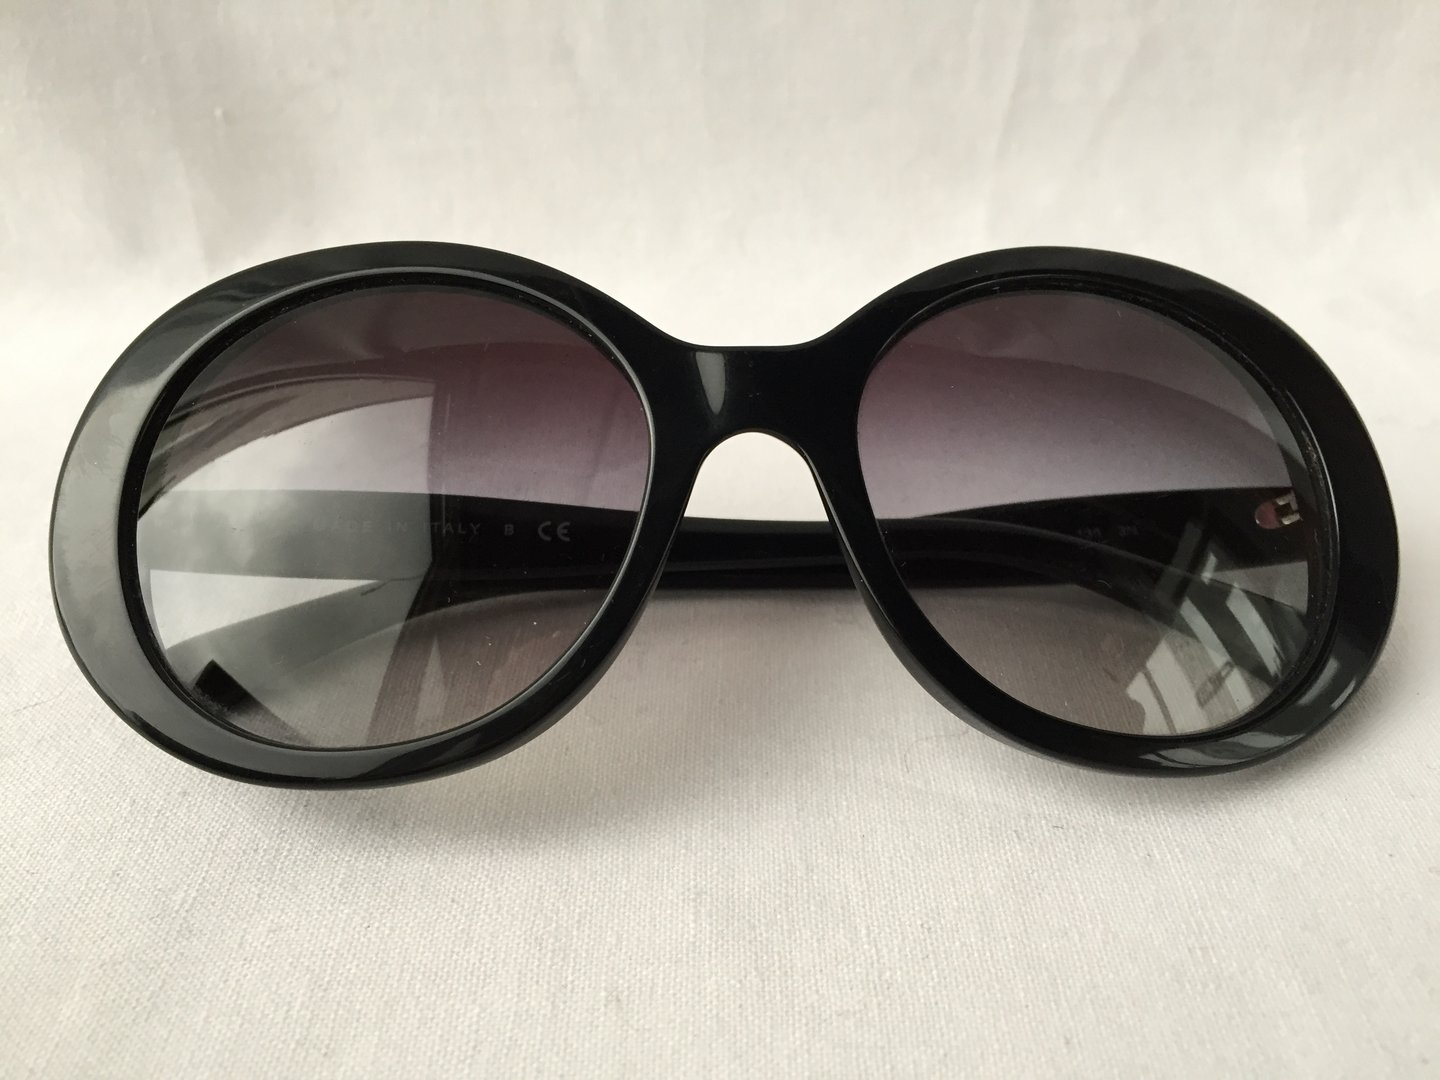 Chanel Style Sunglasses  chanel black sunglasses oval jackie o style www chanelvintage net